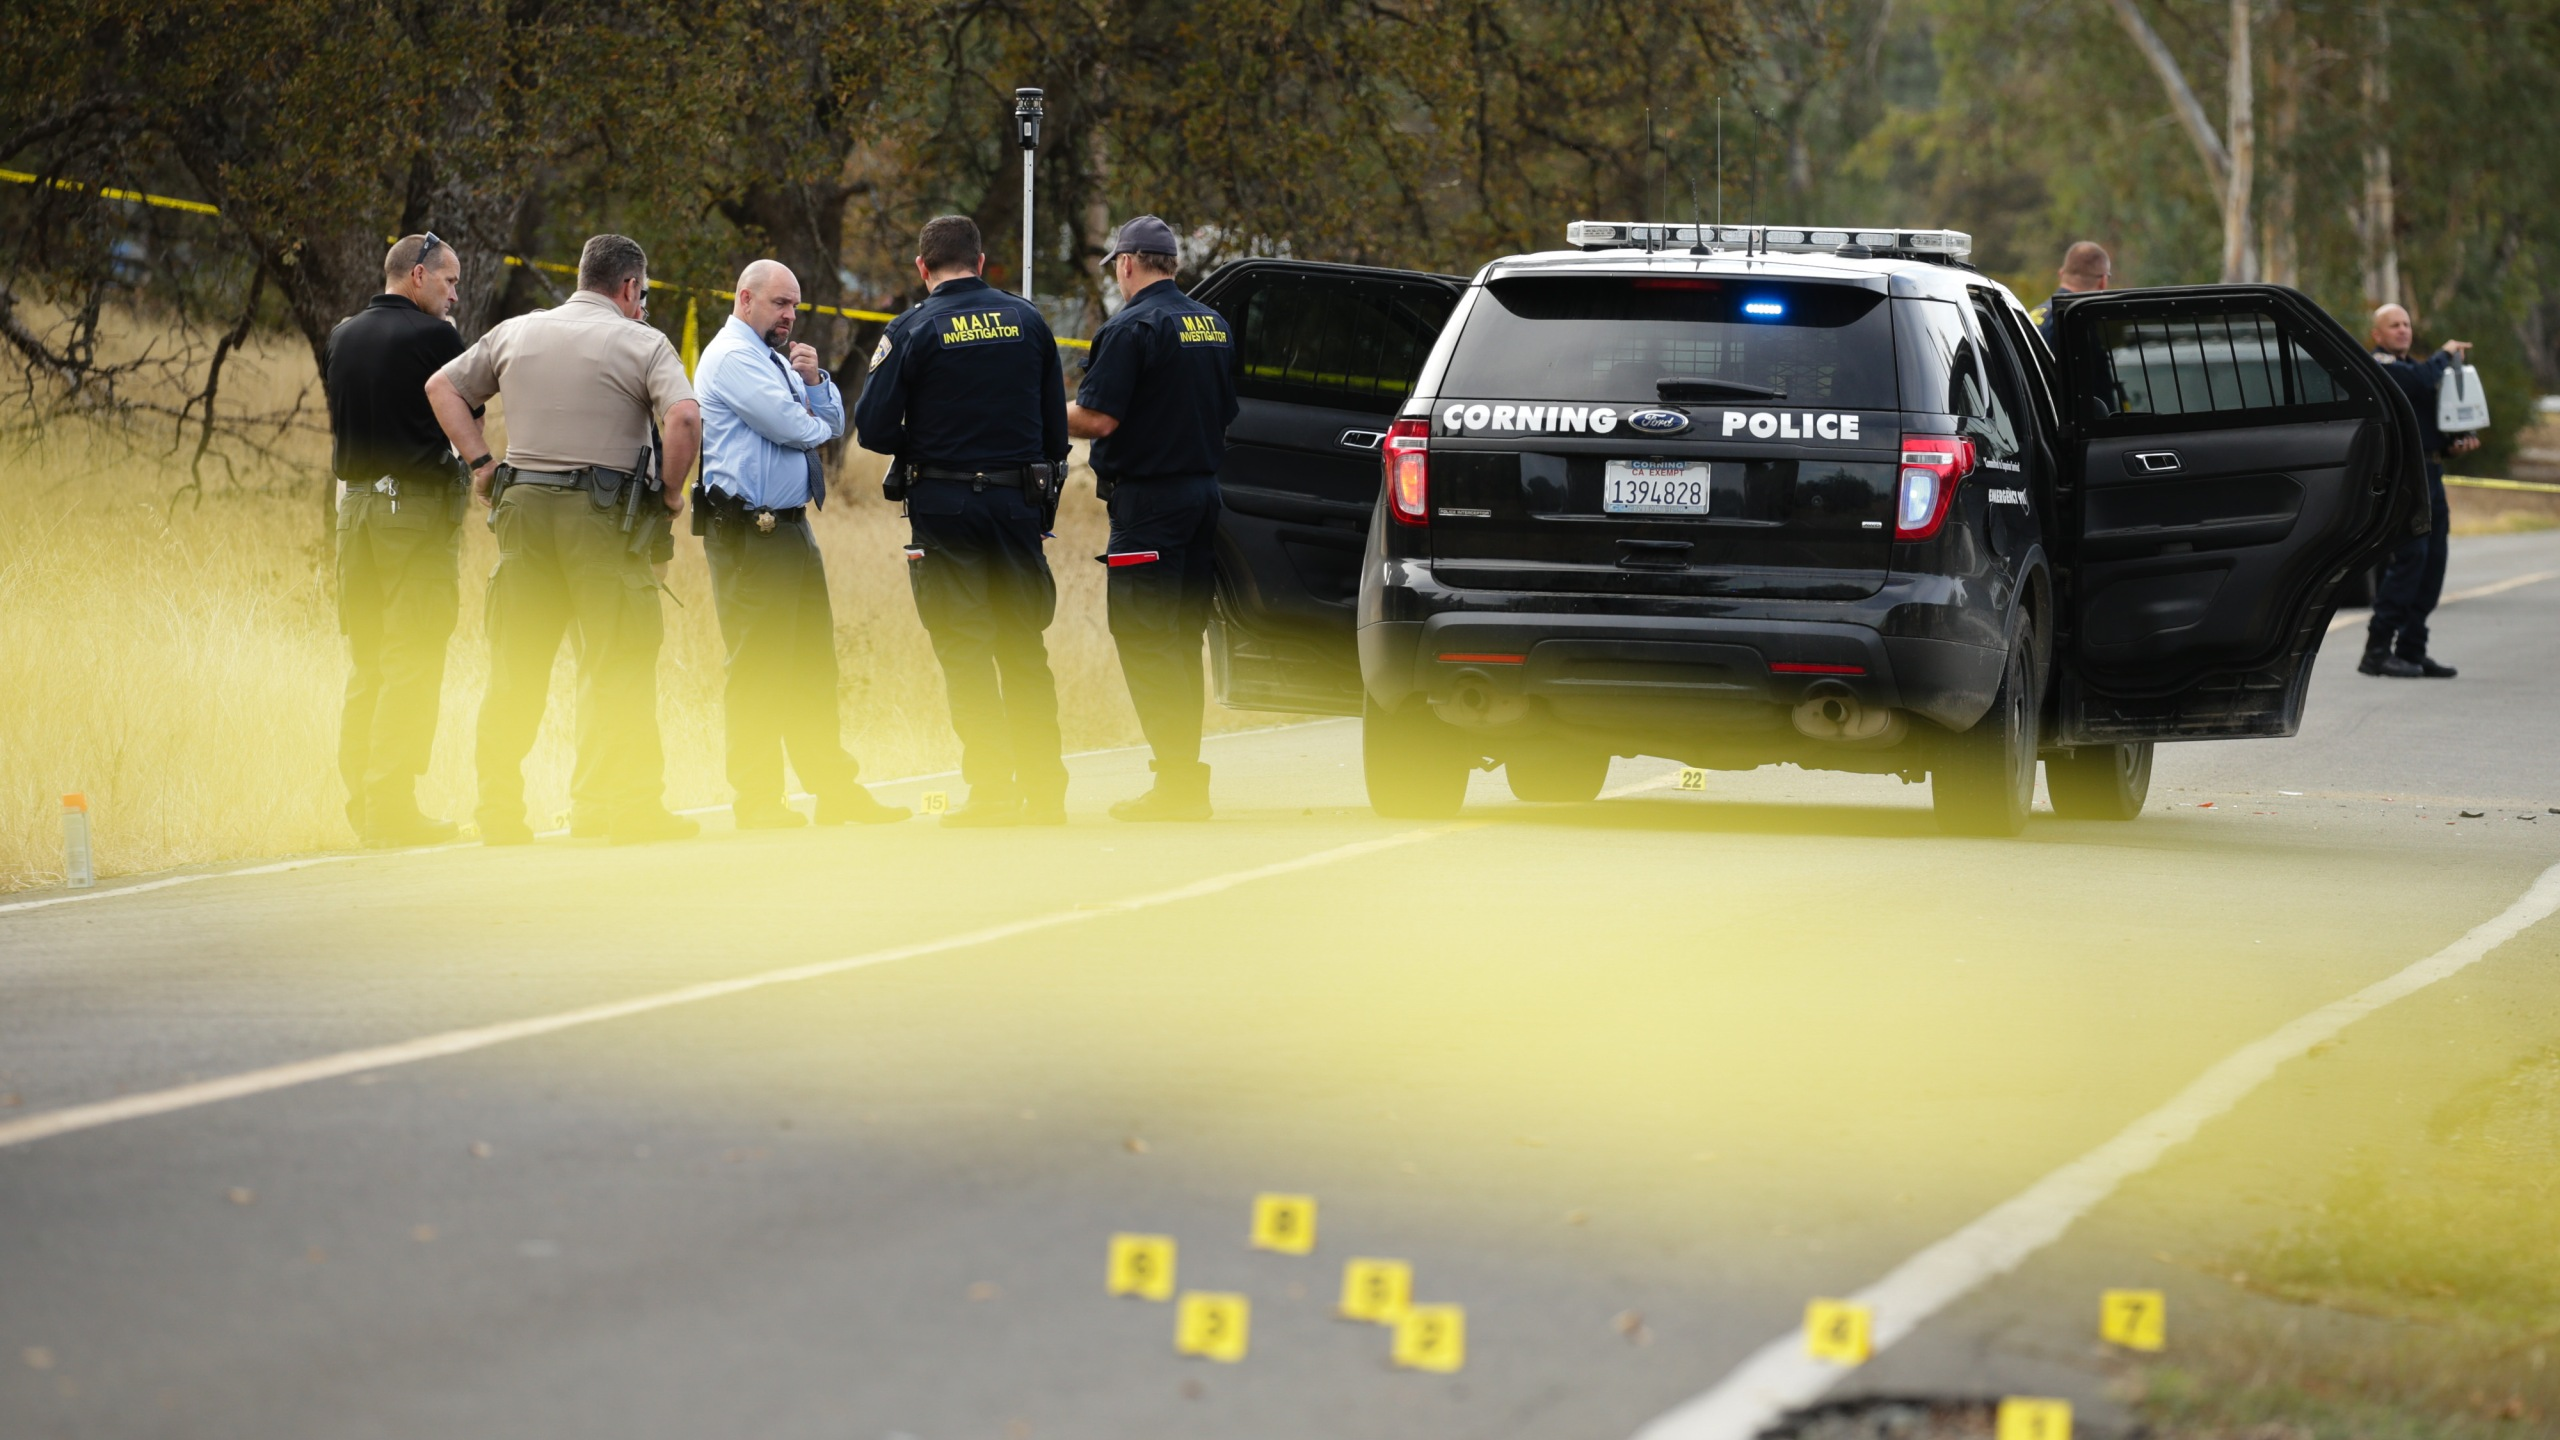 Law enforcement officers and investigators converse near a police vehicle that was involved in a shooting on November 14, 2017, in Rancho Tehama, California. (Credit: Elijah Nouvelage/AFP/Getty Images)